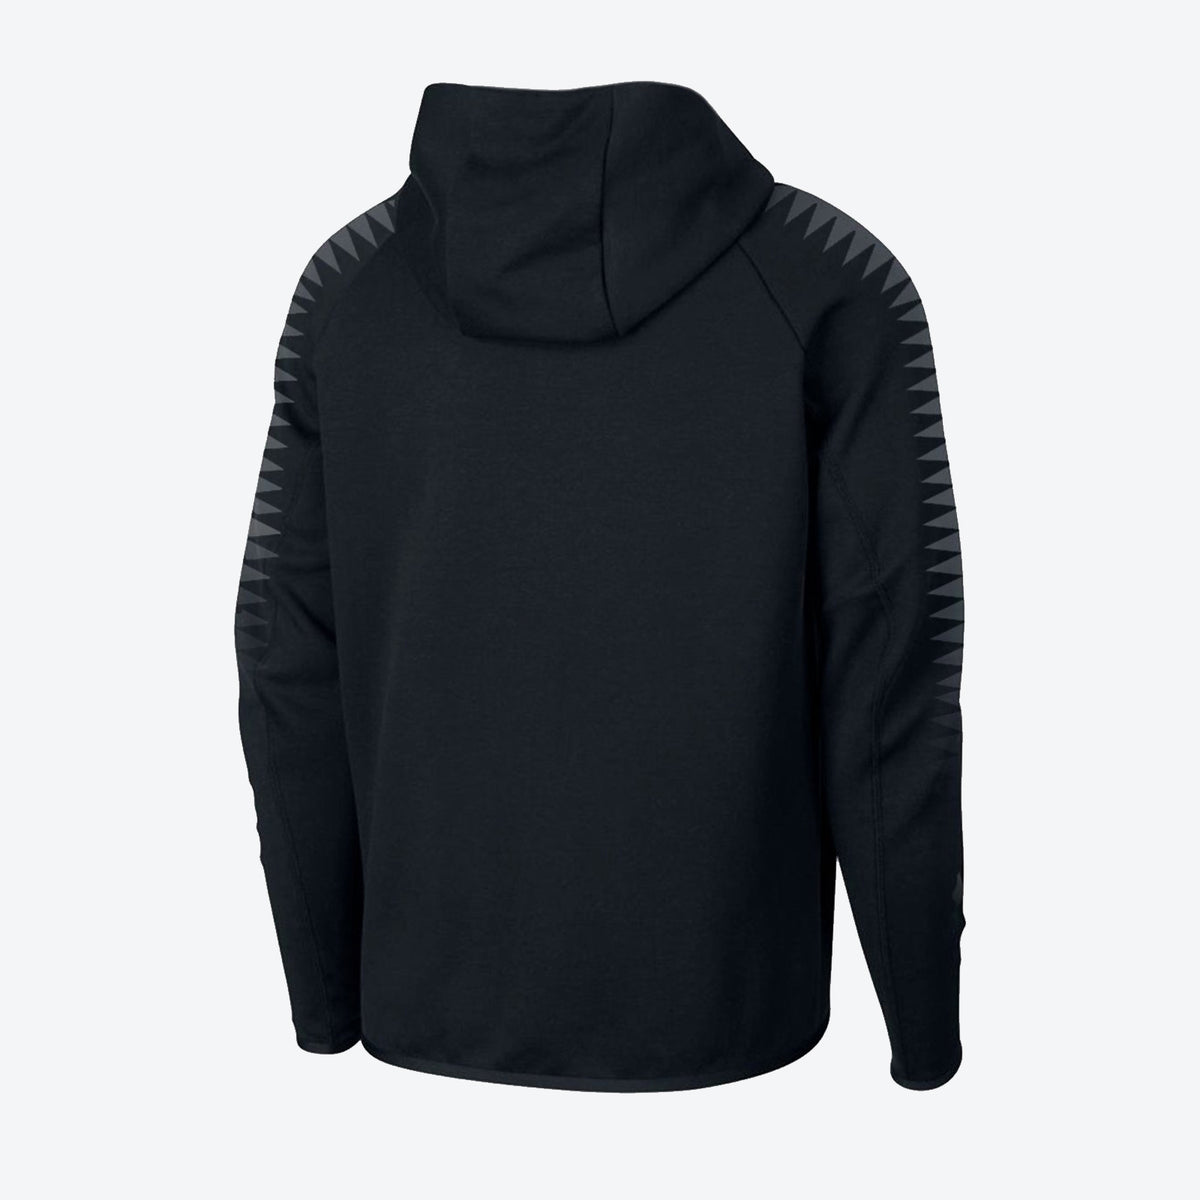 Throwback Full Zip Tech Jacket - Black